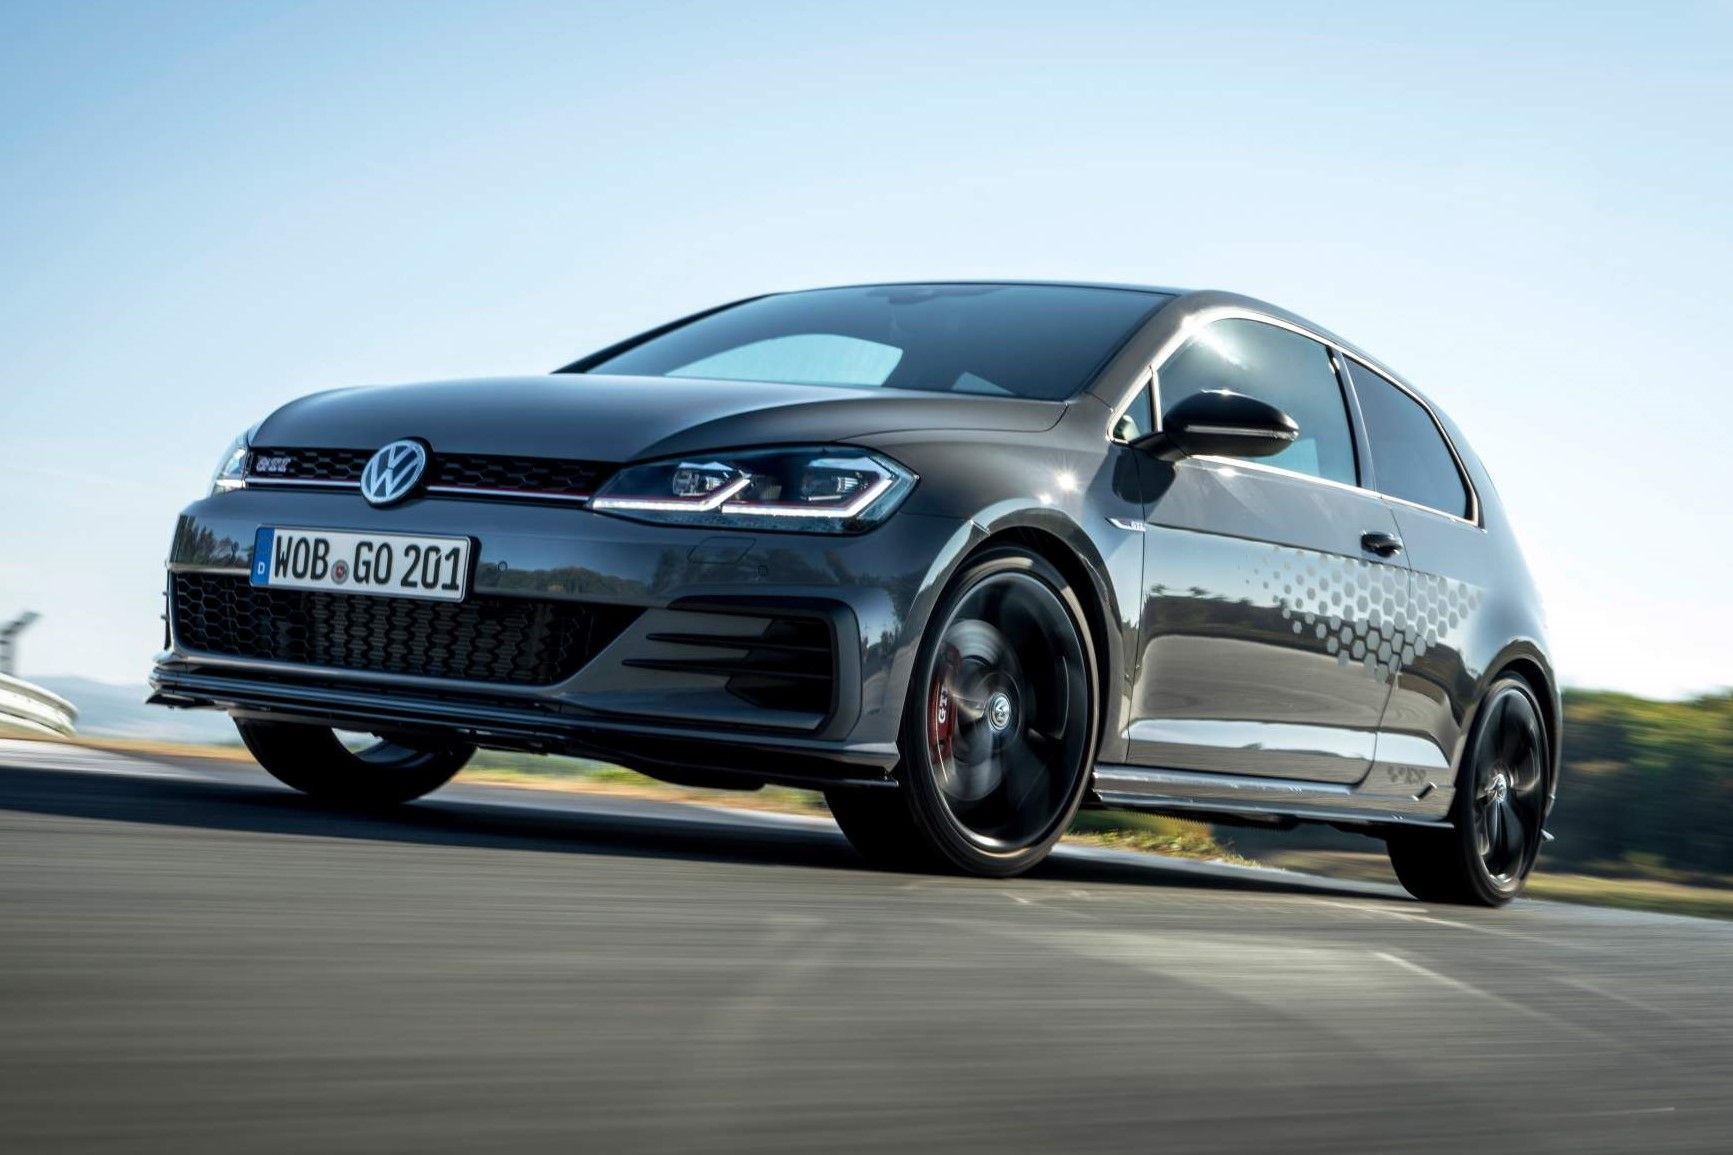 Volkswagen Golf Gti Tcr Pricing And Availability For South Africa Golf Gti Volkswagen Golf Gti Volkswagen